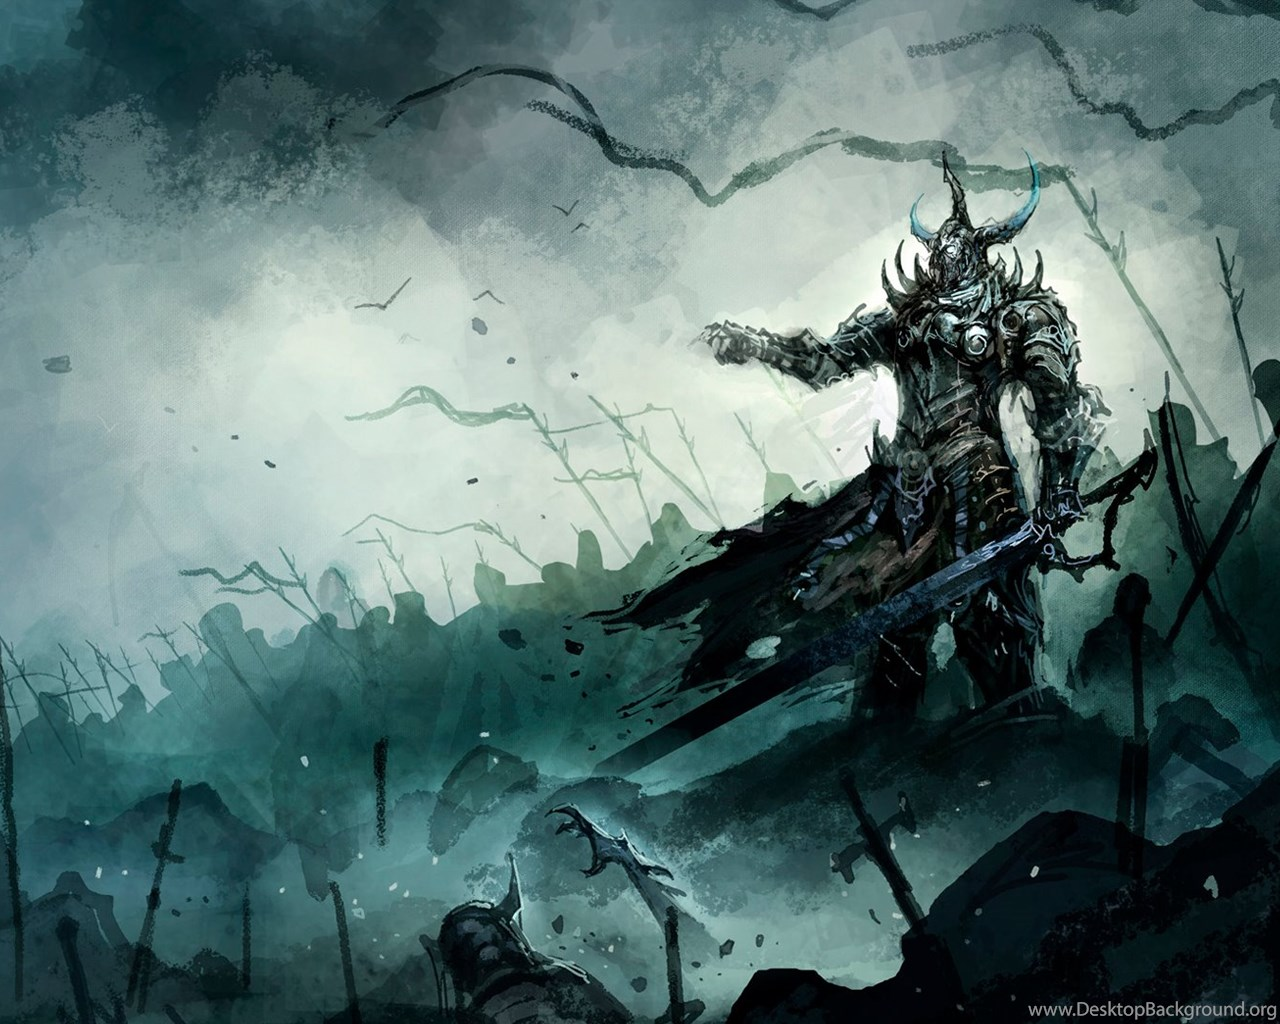 Hd Wallpapers 1080p Widescreen For Mobile Wallpapers Giant Medieval Dark Demon Fantasy Knight Beast